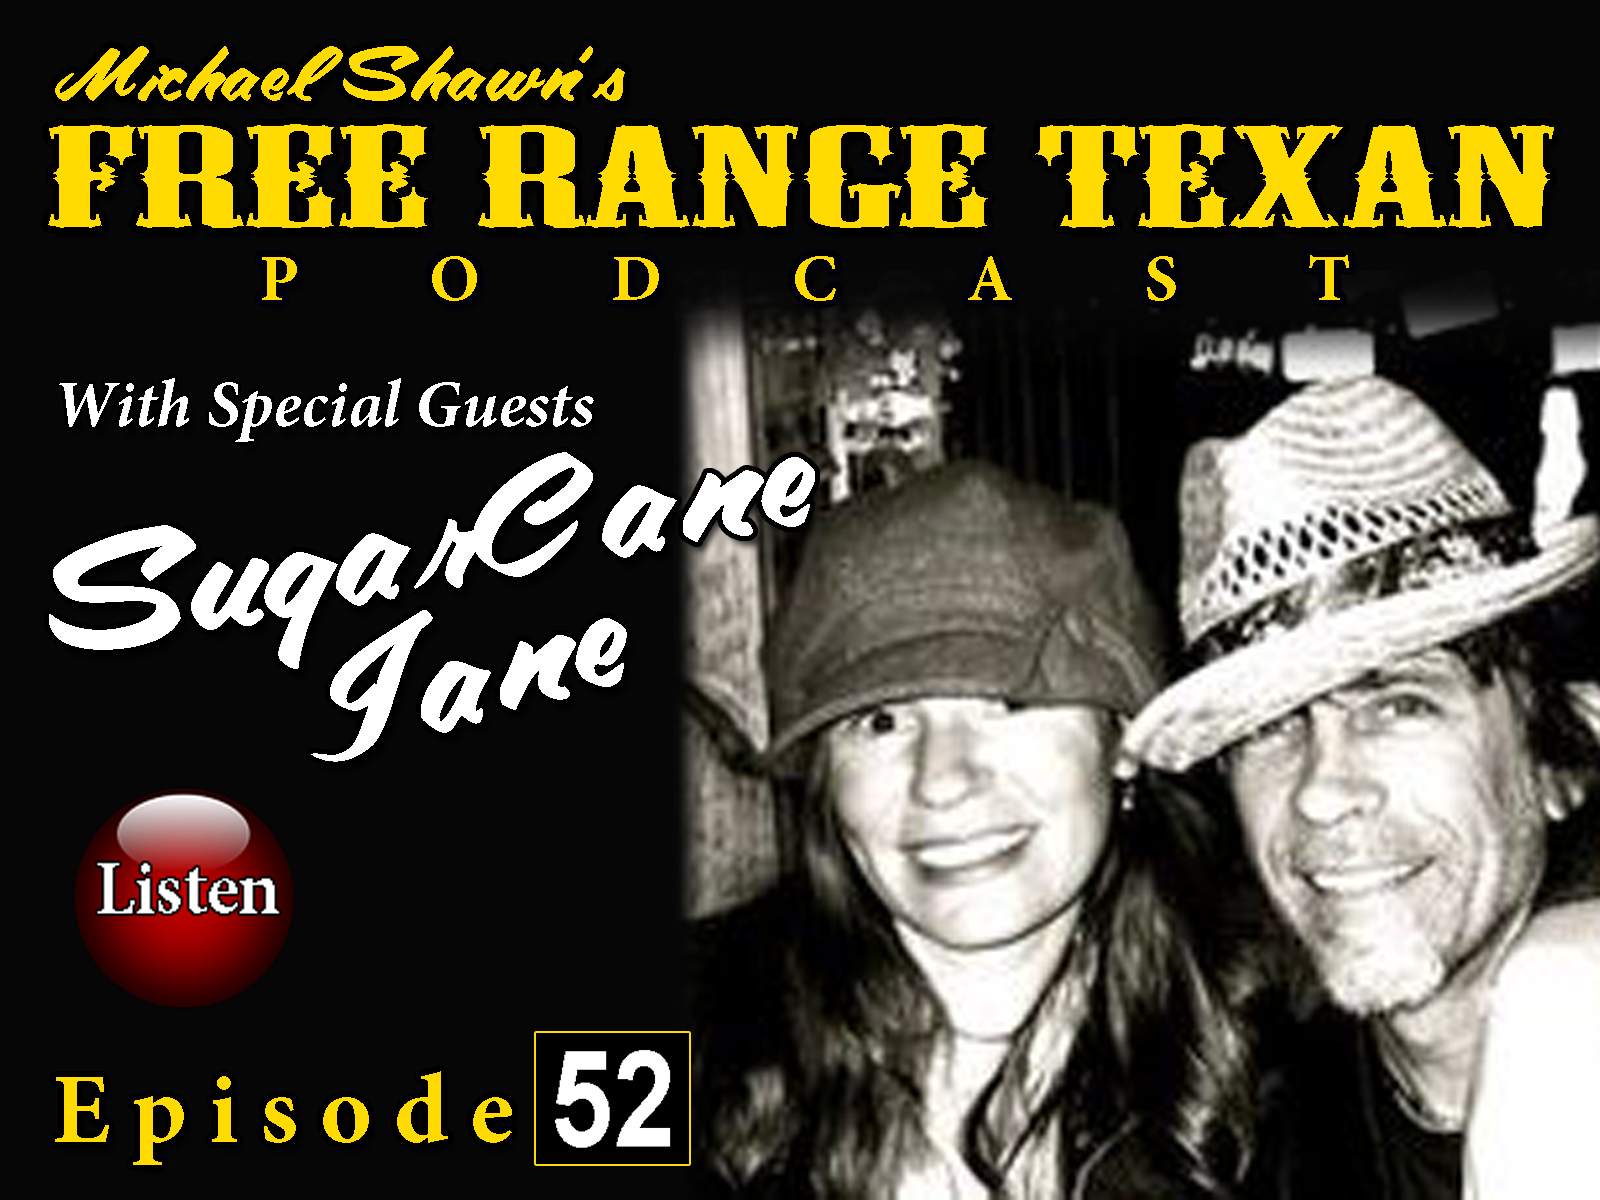 Free Range Texan Podcast Episode 52